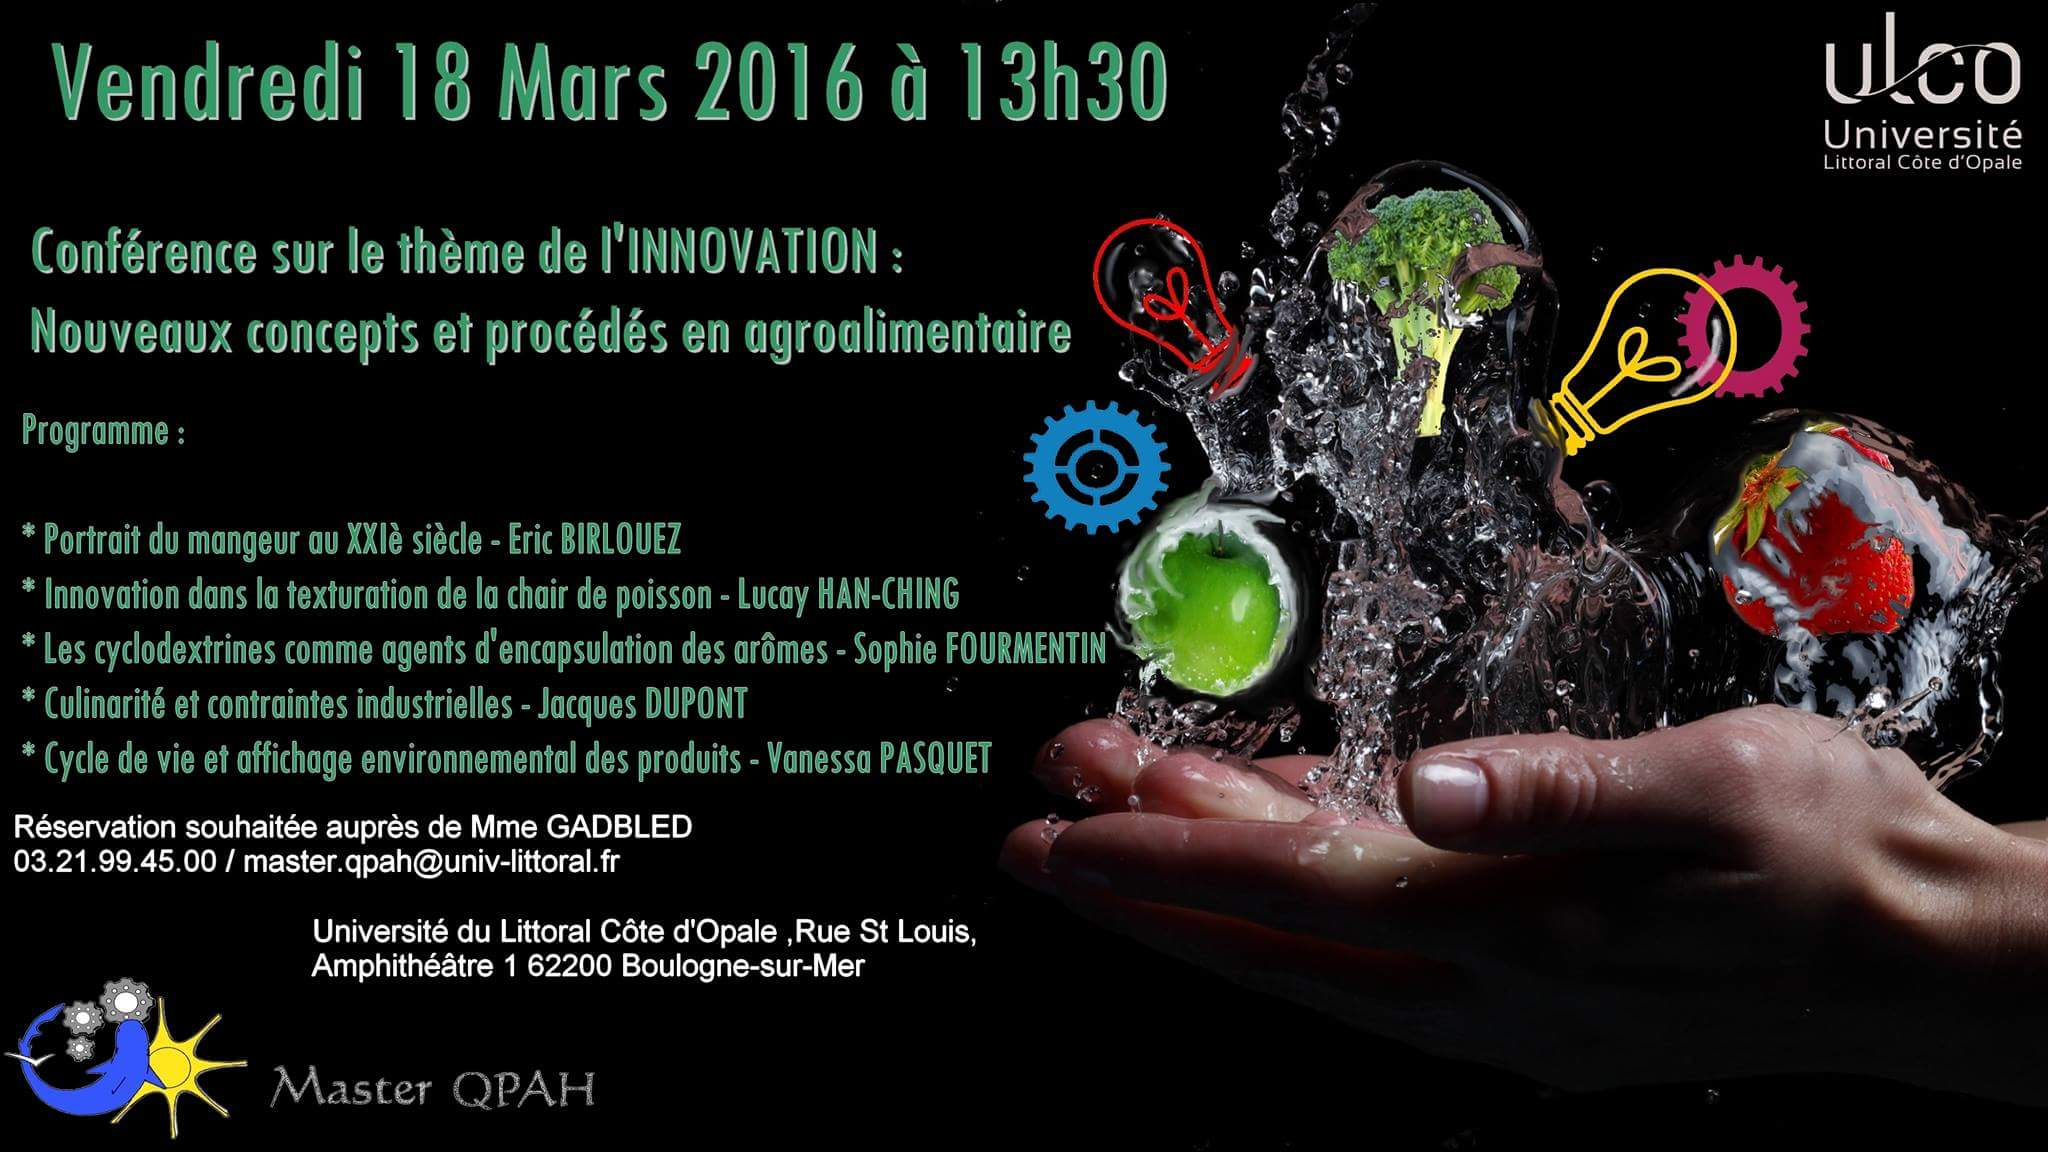 affiche conférence Innovation Master QPAH 16